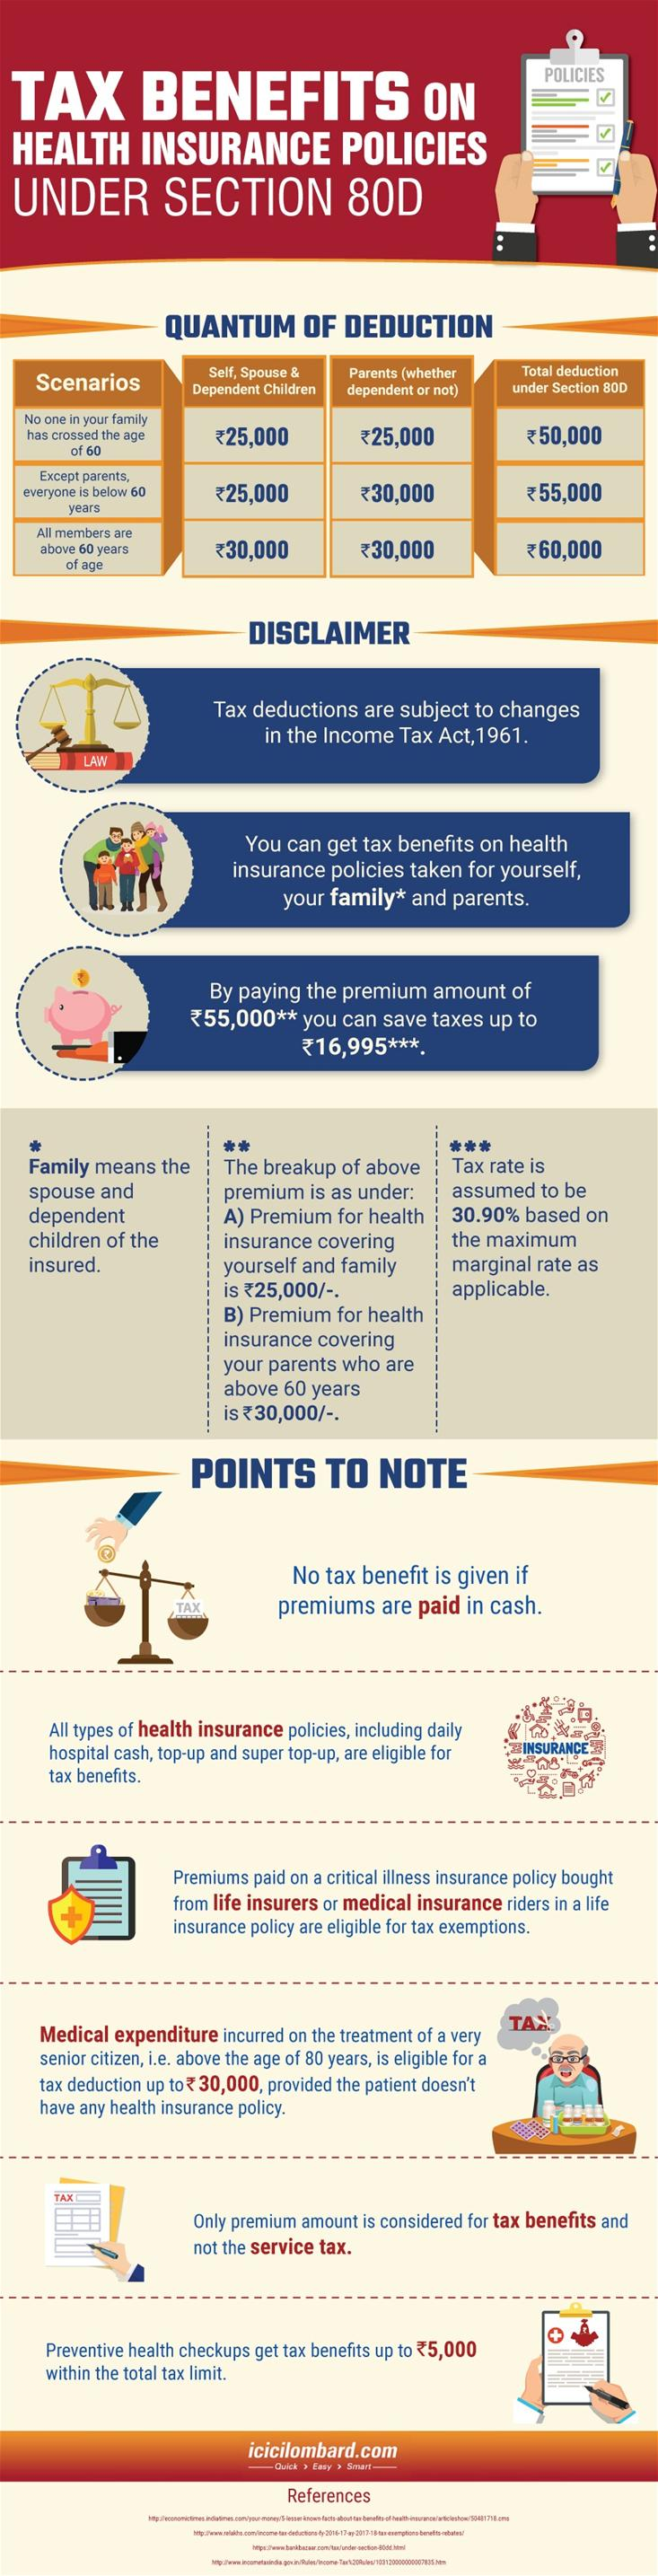 Tax Benefits under section 80D